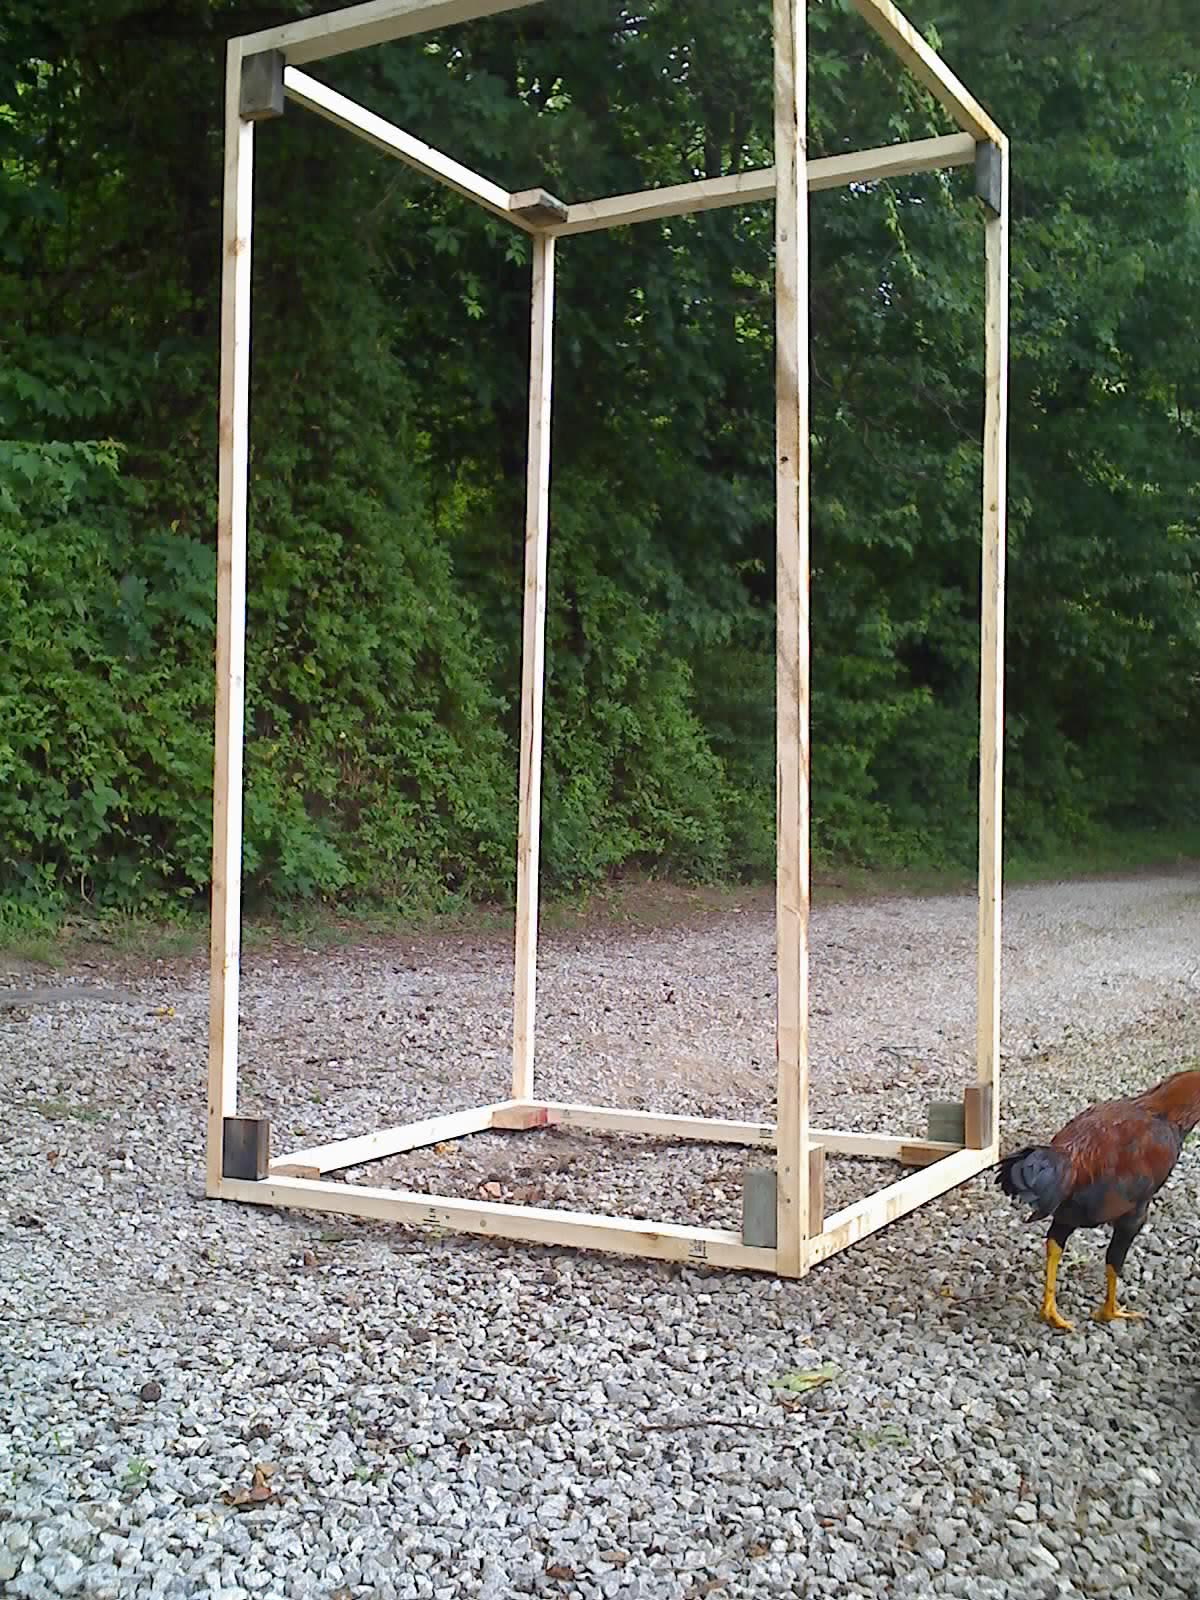 Gamefowl Housing